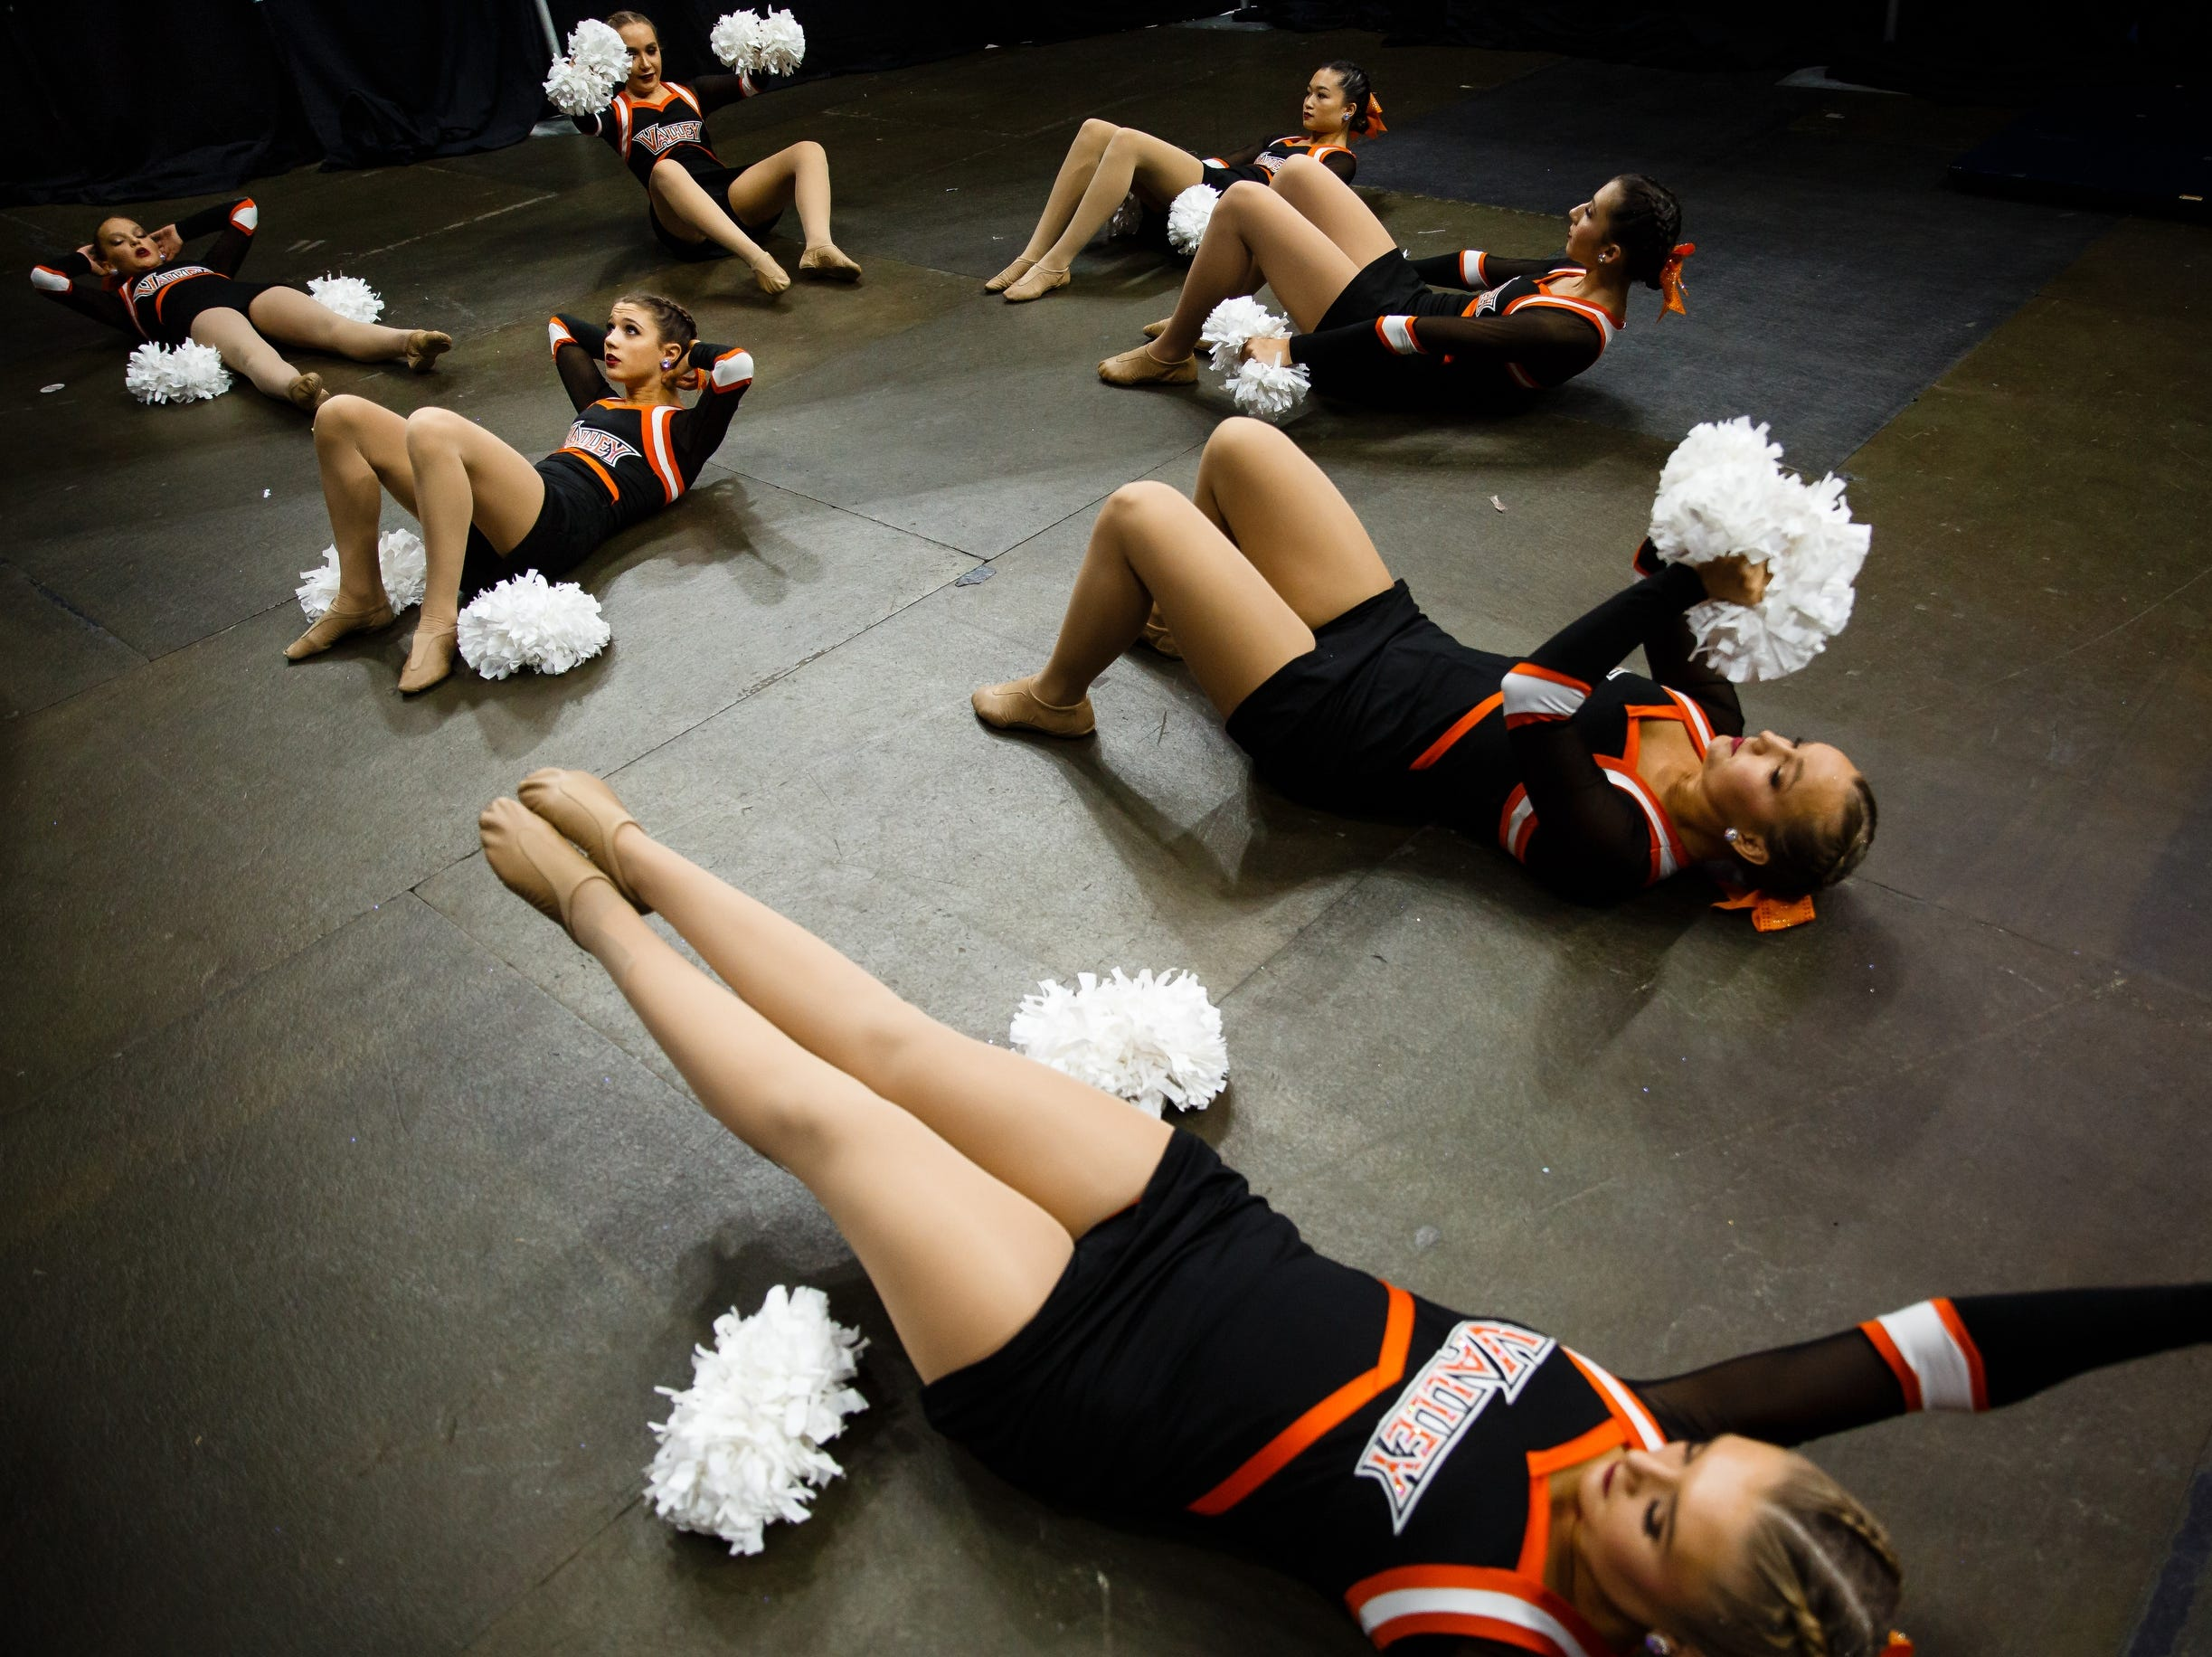 Cheerleaders from Valley High School warm up before performing at the Iowa Dance State Championships at Wells Fargo Arena on Friday, Nov. 30, 2018, in Des Moines.